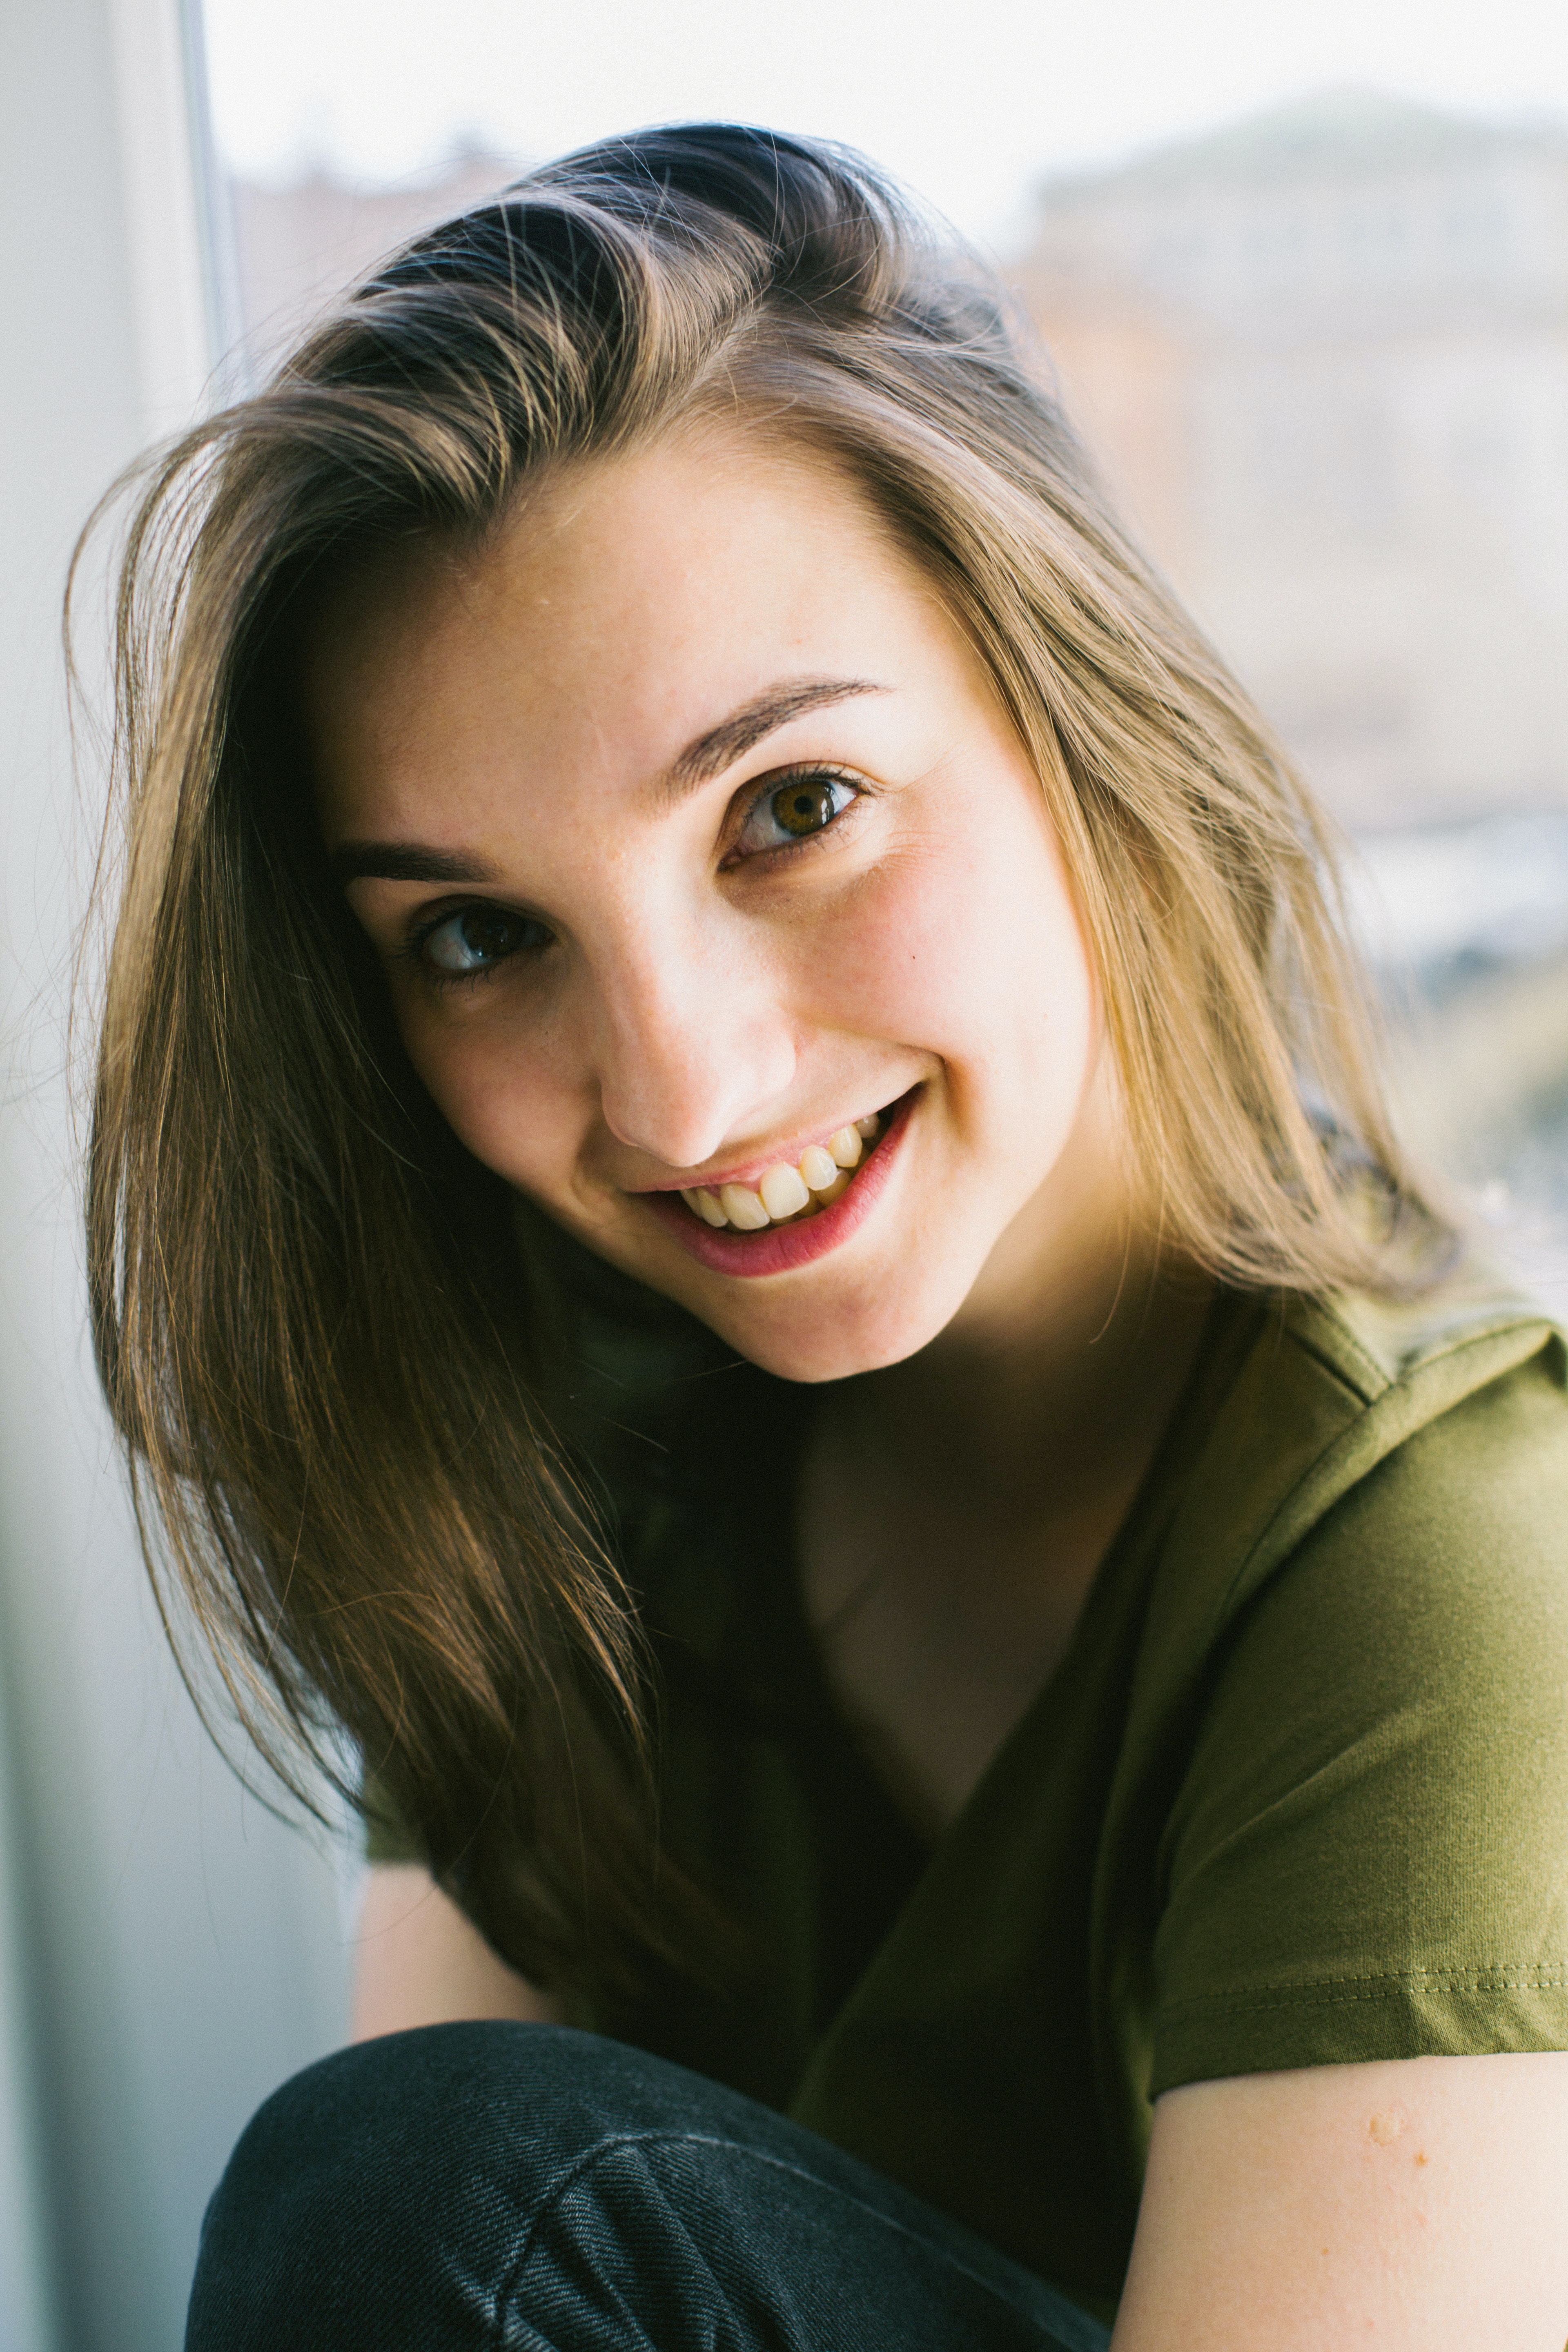 Close-Up Photography of a Smiling Woman · Free Stock Photo